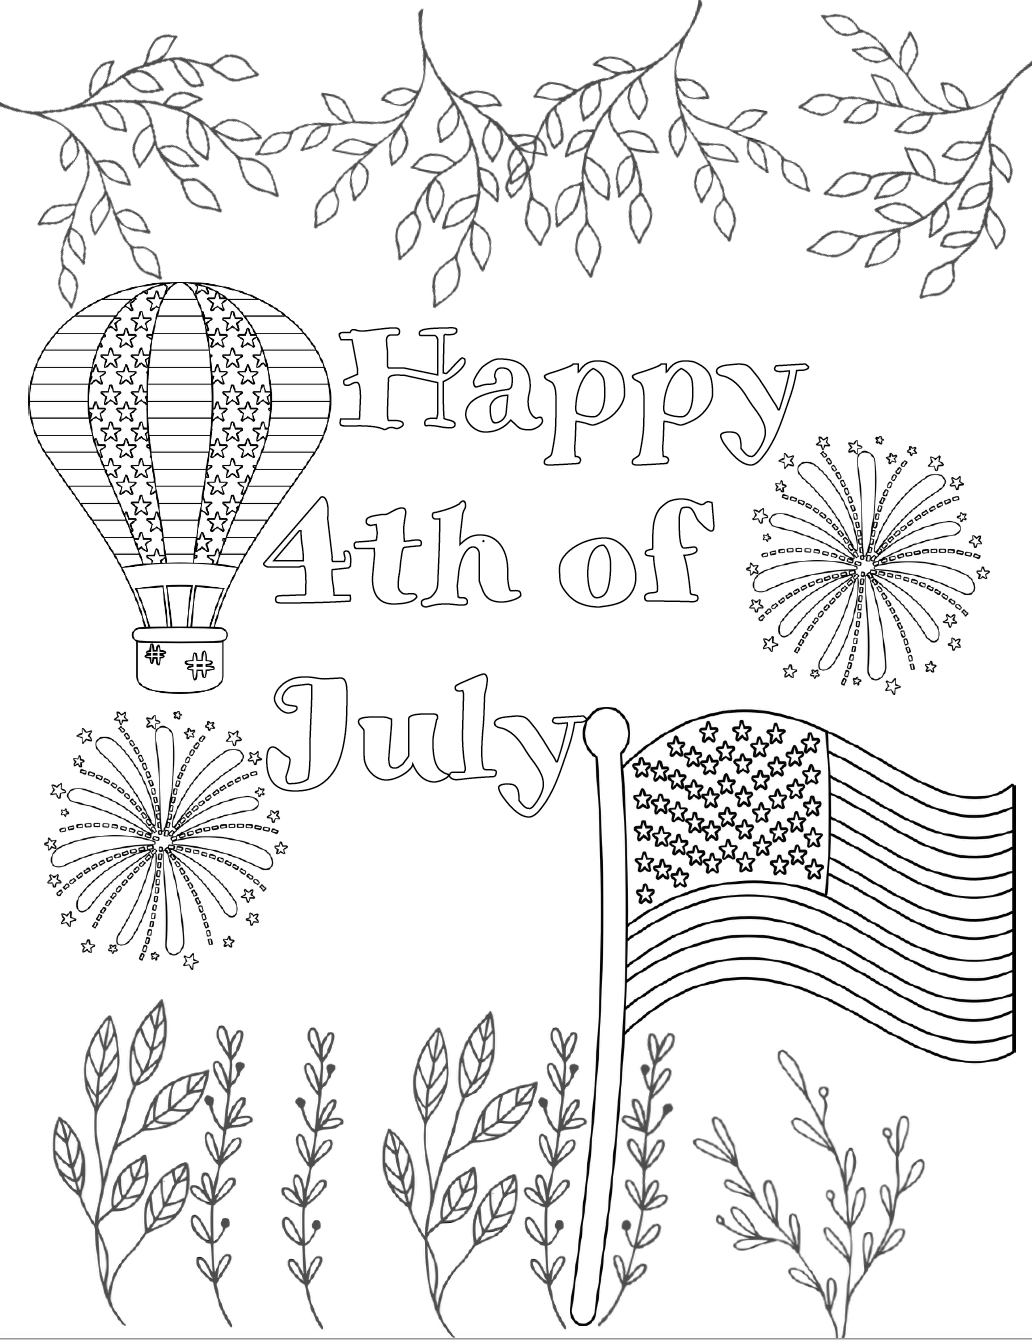 Free Printable Fourth of July Coloring